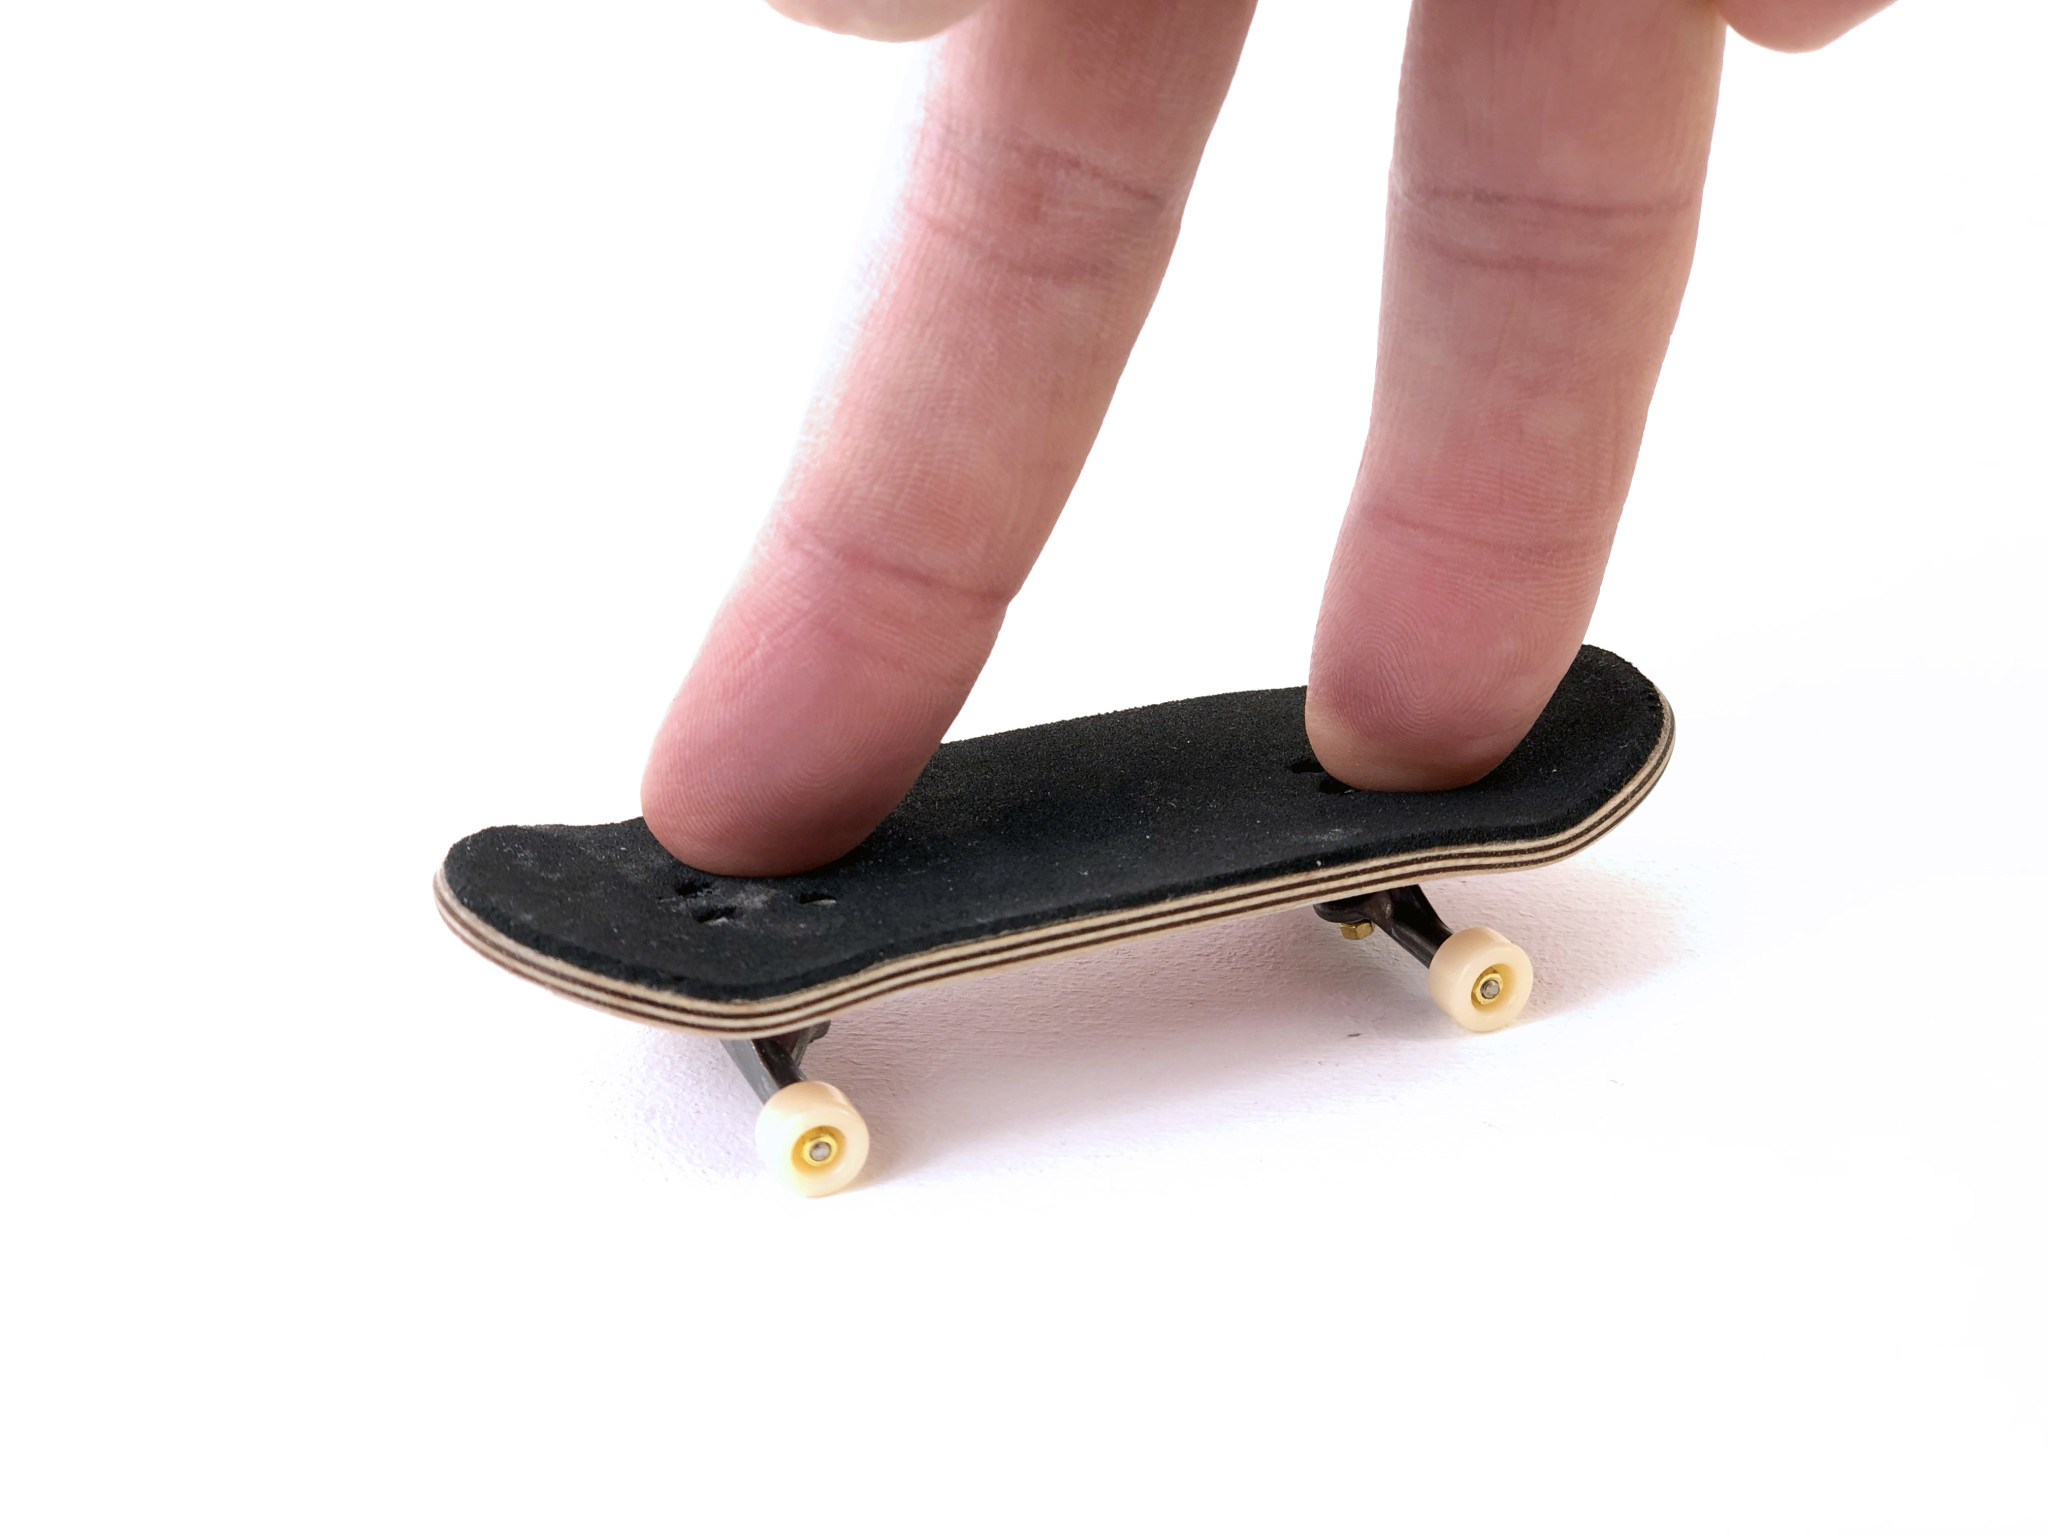 The Point The Point - Millie Fingerboard